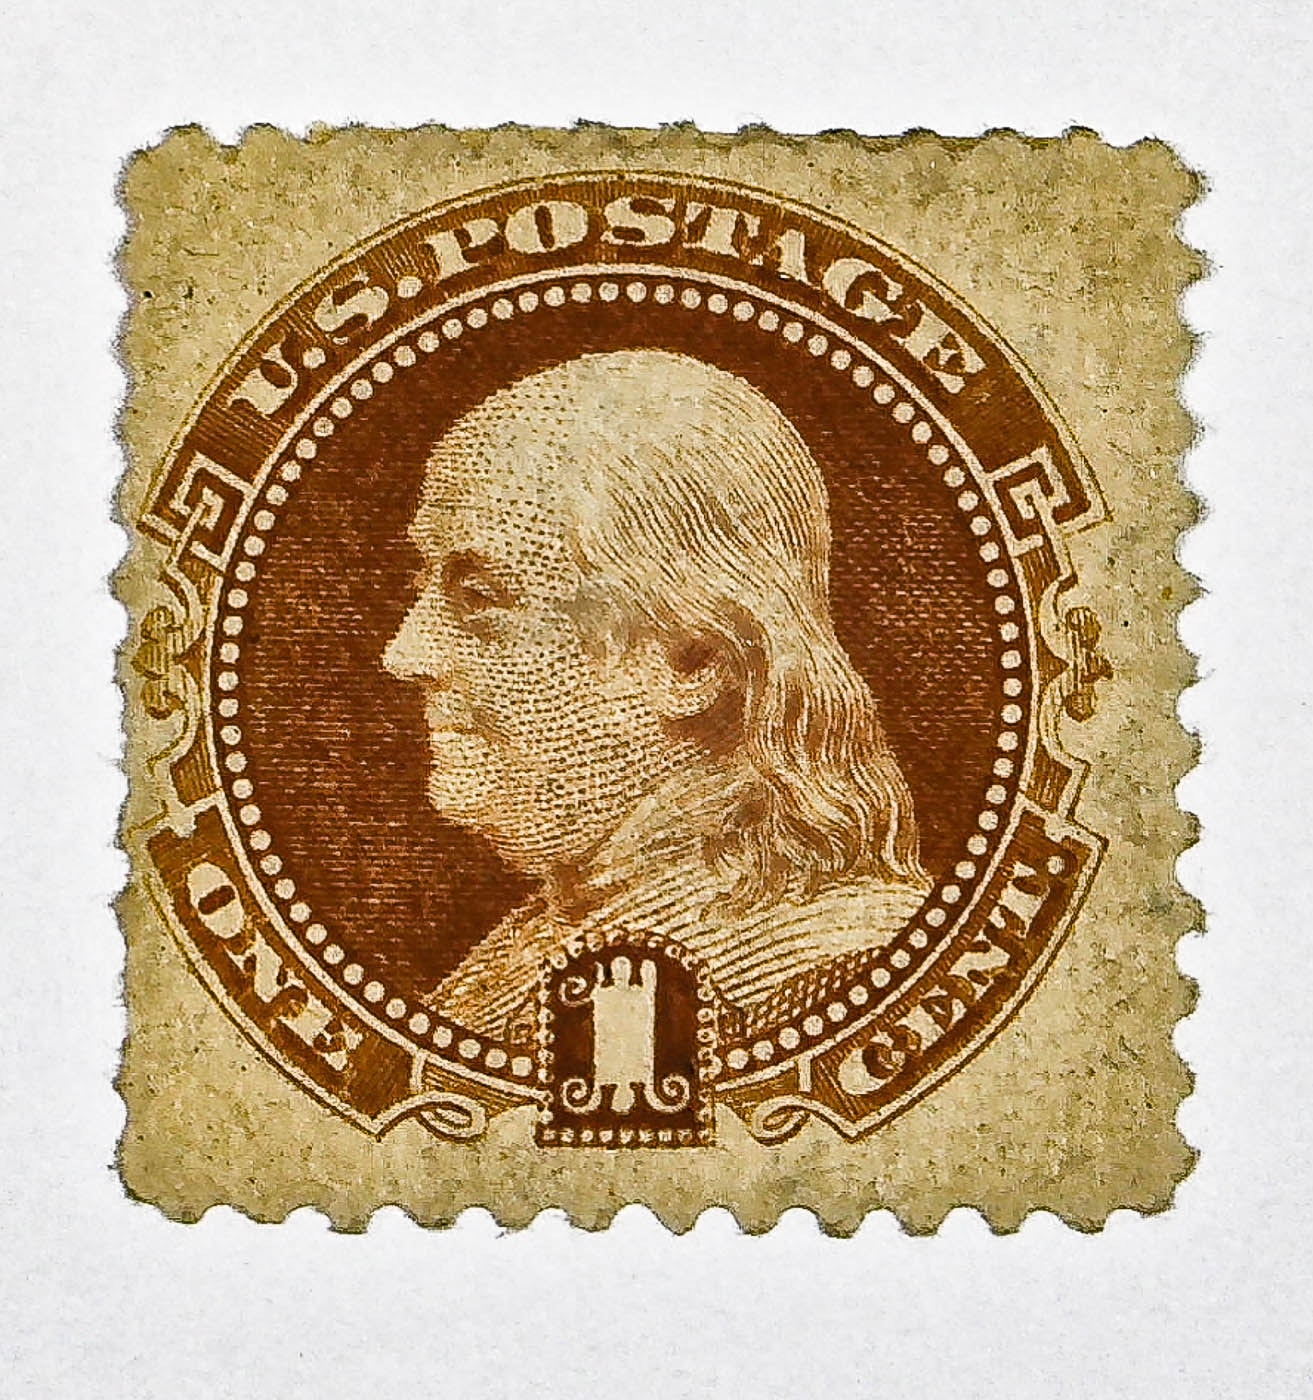 1869 Scott # 112 U.S. One Cent Postage Stamp in Mint Condition